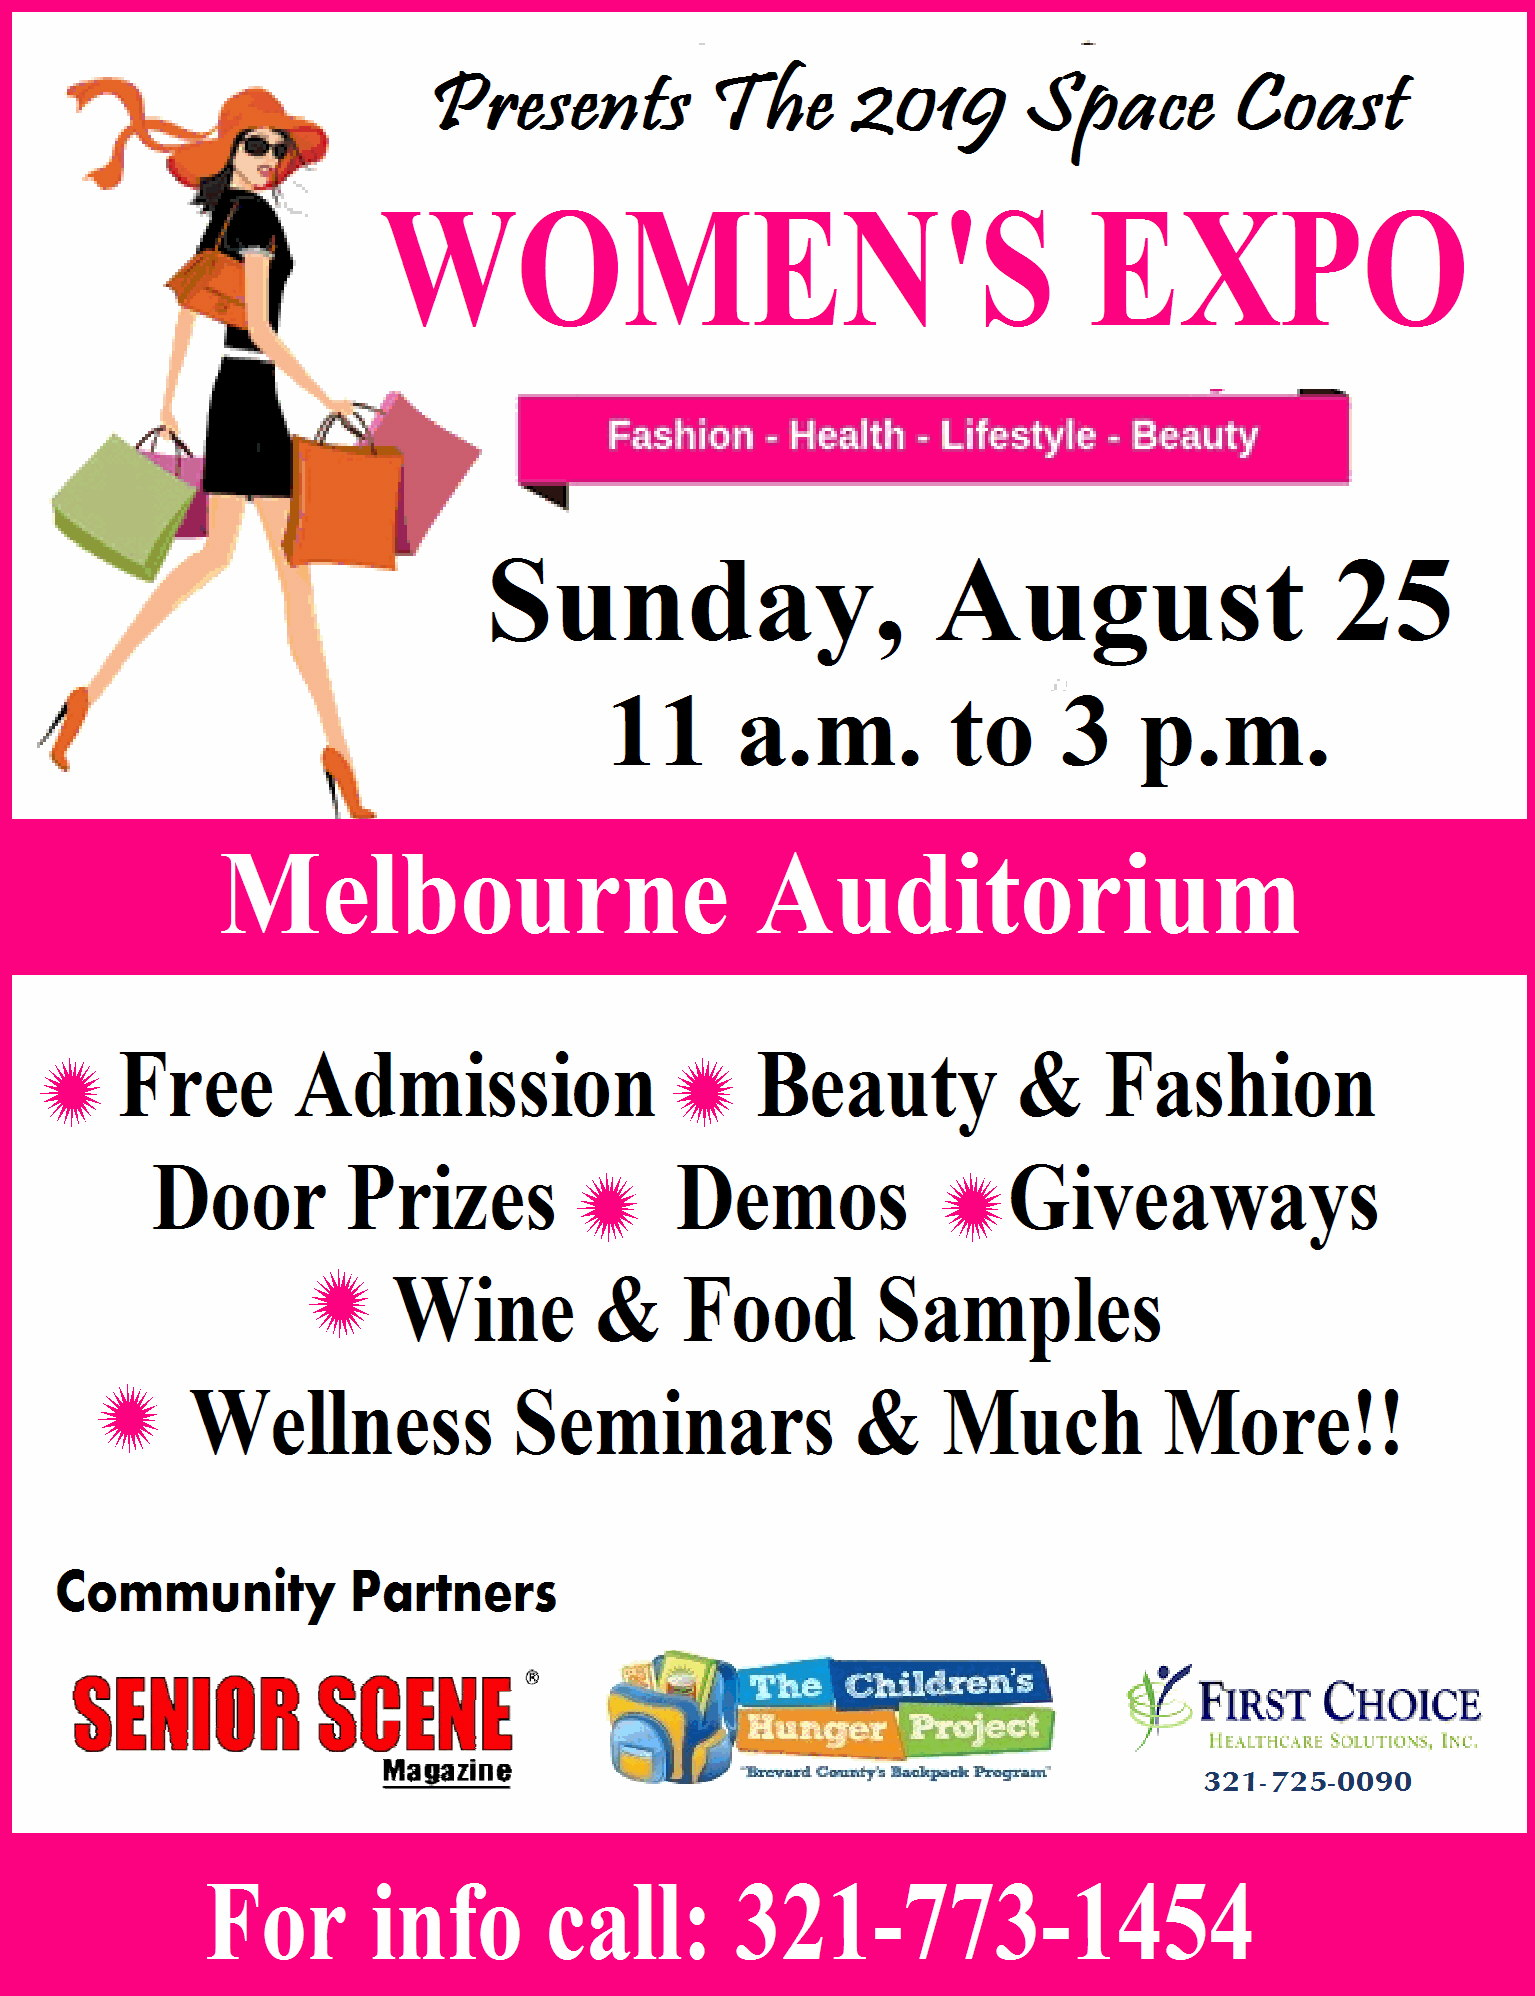 The 2019 Space Coast Women's Expo